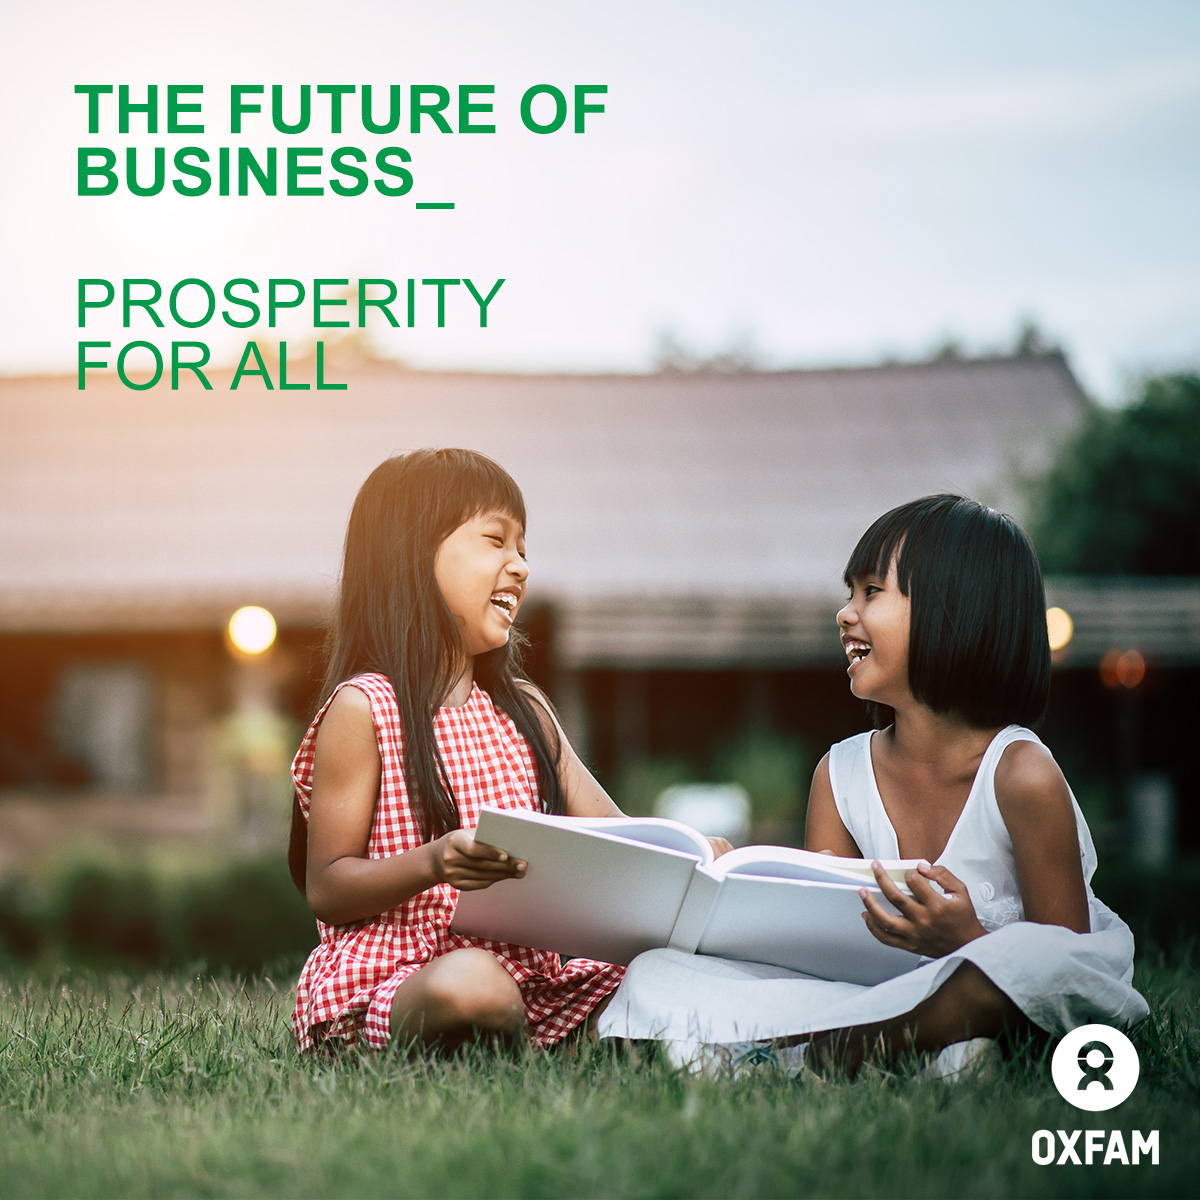 The Future of Business is Prosperity for All - Oxfam Asia